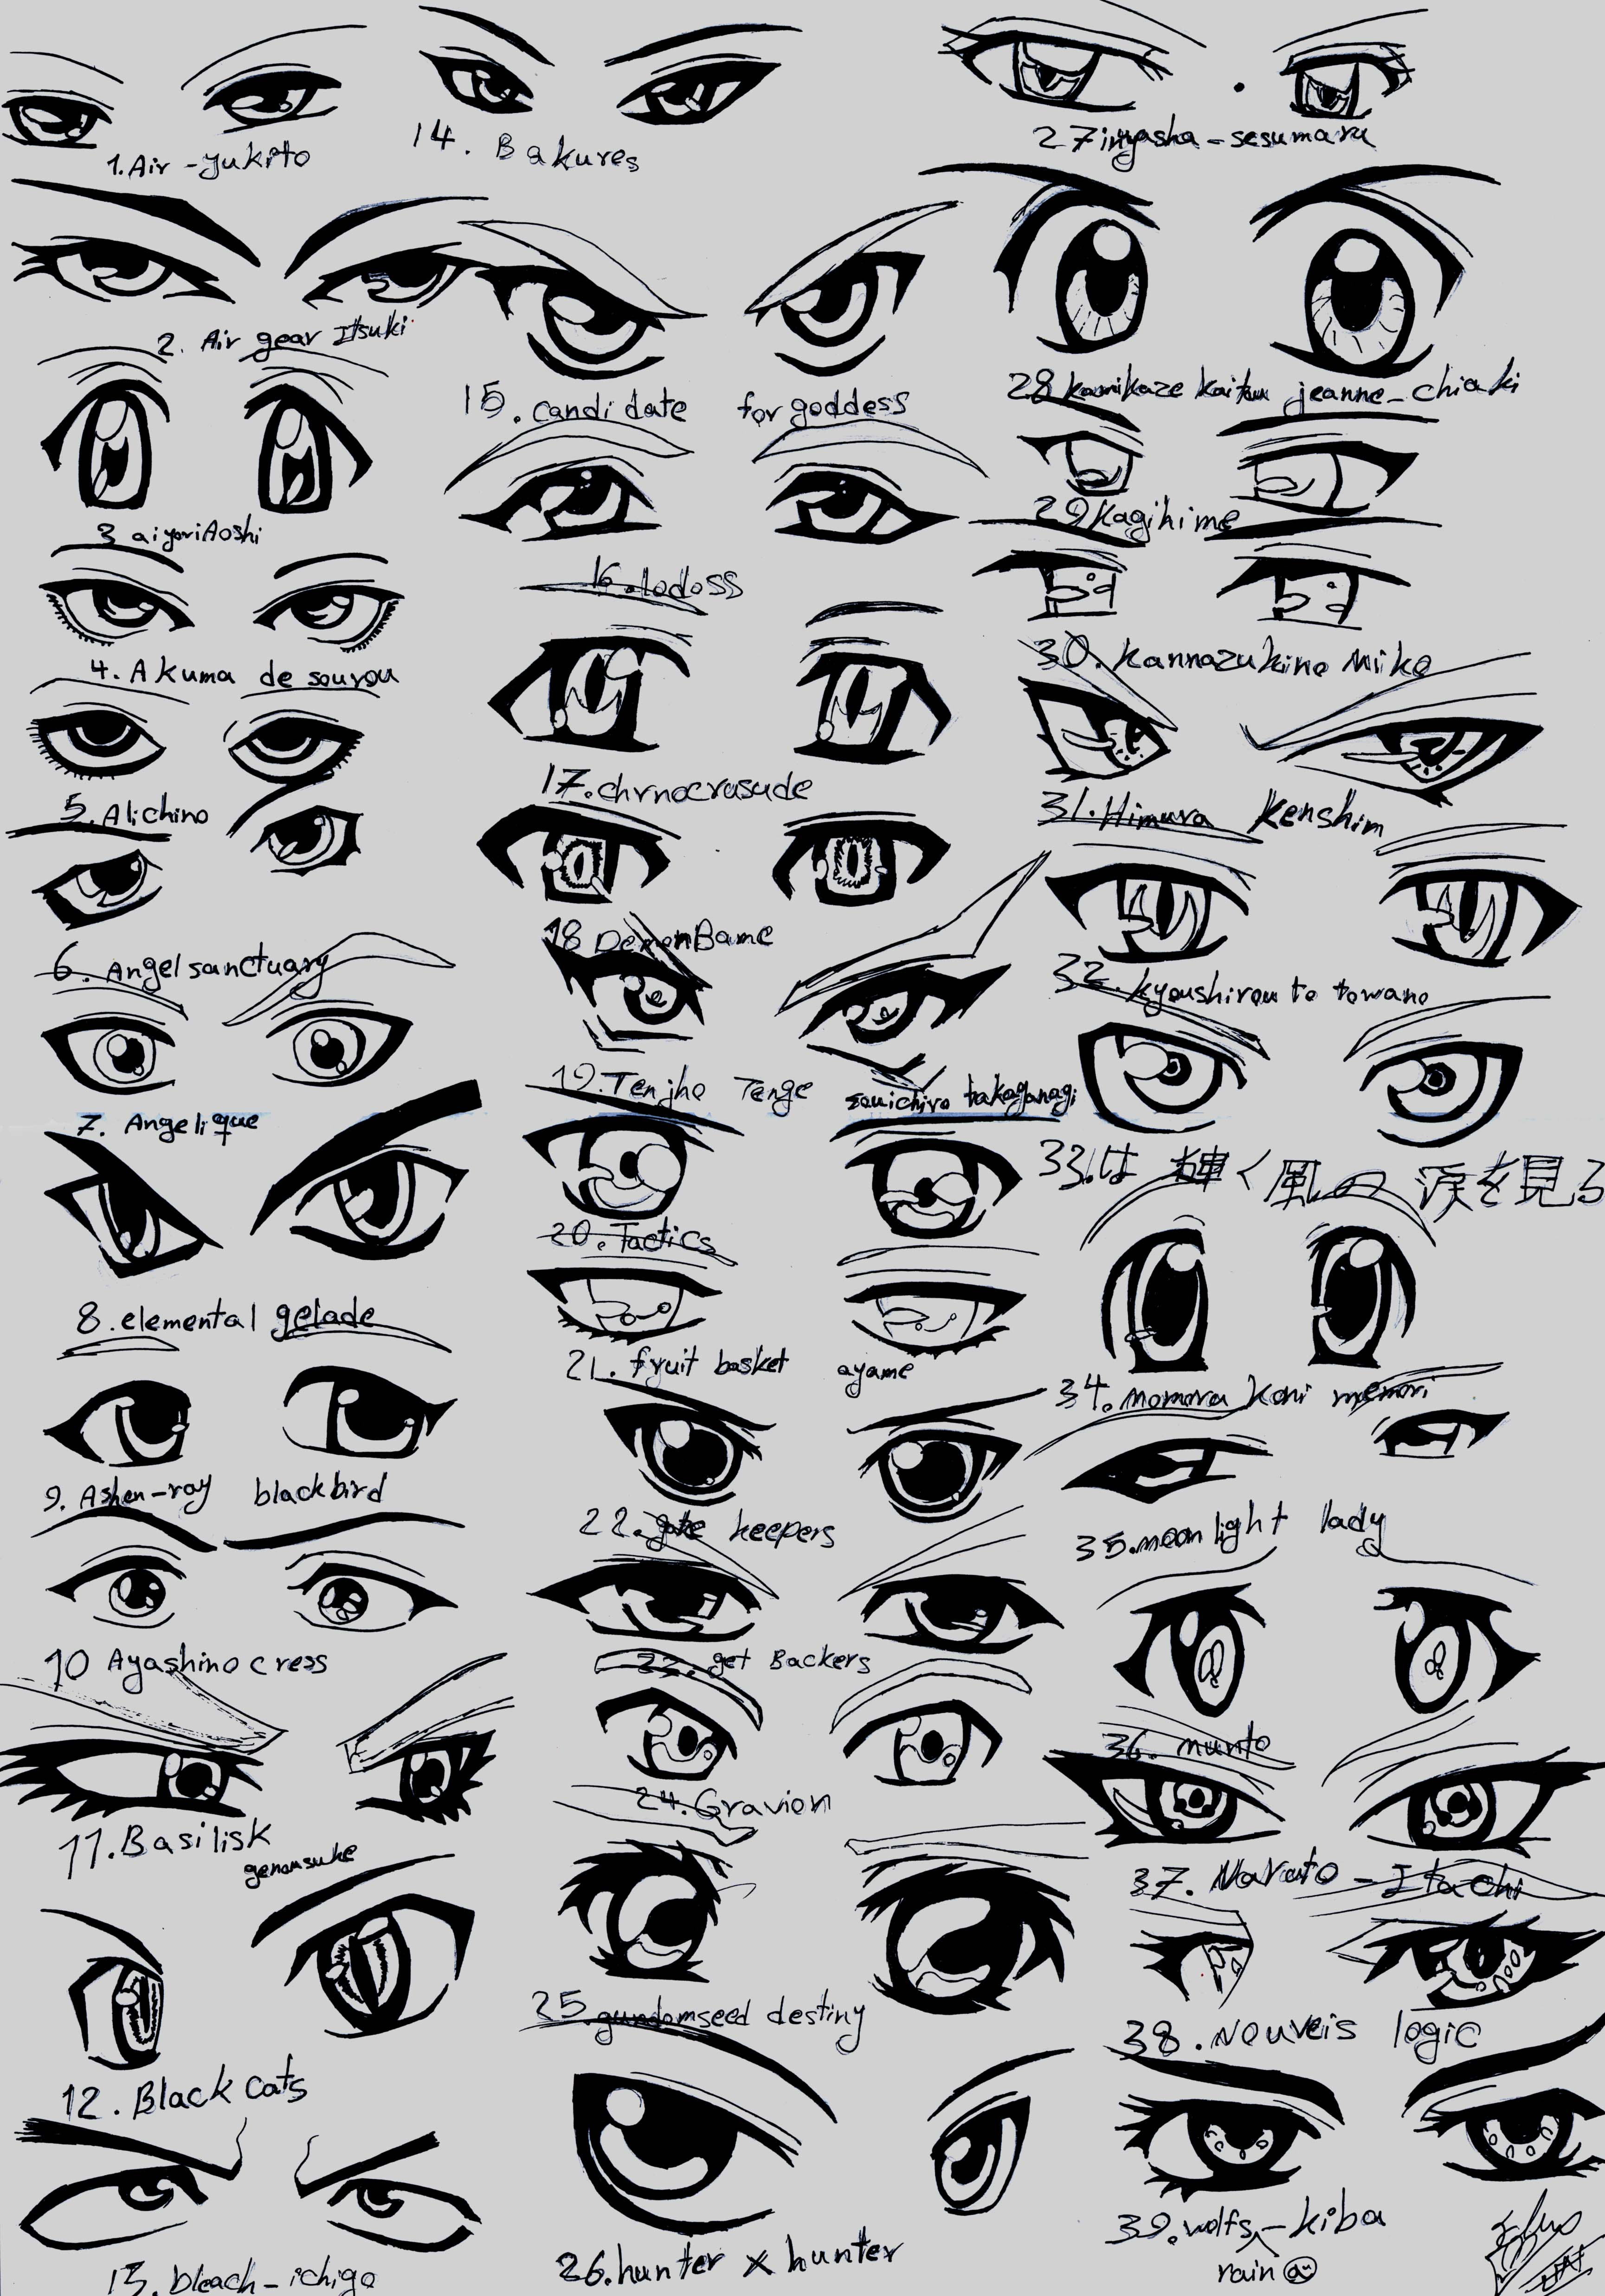 how to draw happy anime eyes